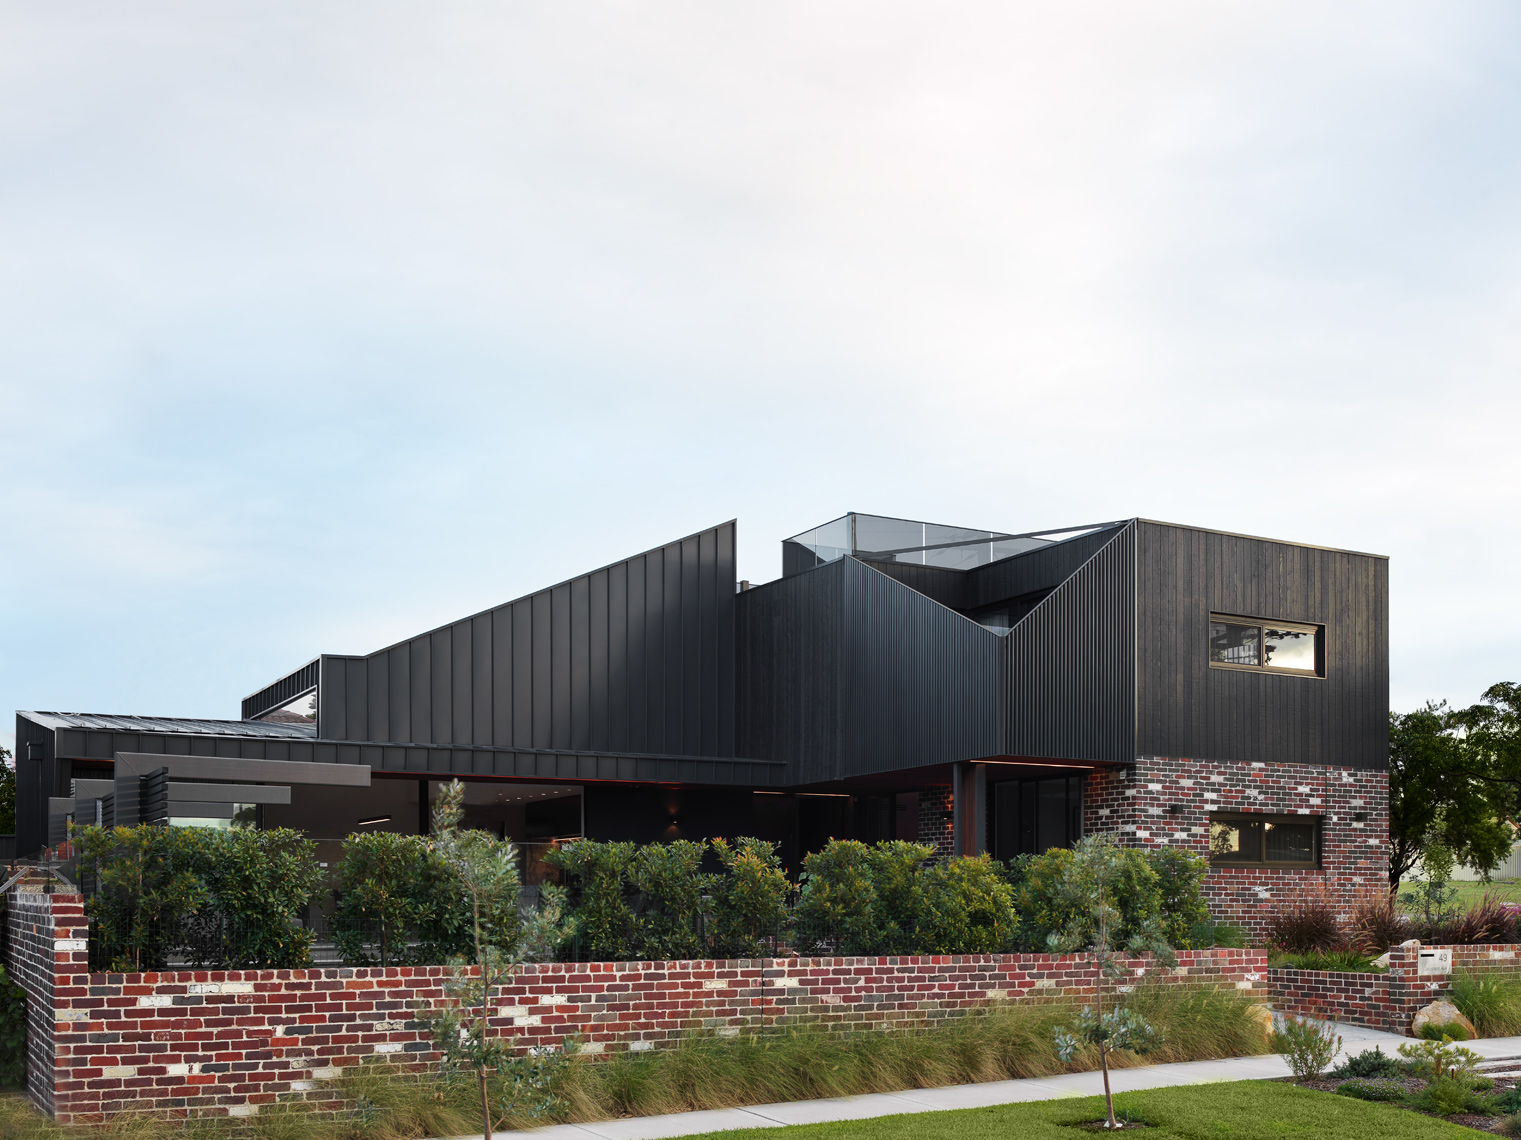 luke-butterly-2019-Jacobson-House-by-Anderson-Architecture-Sydney-NSW-16